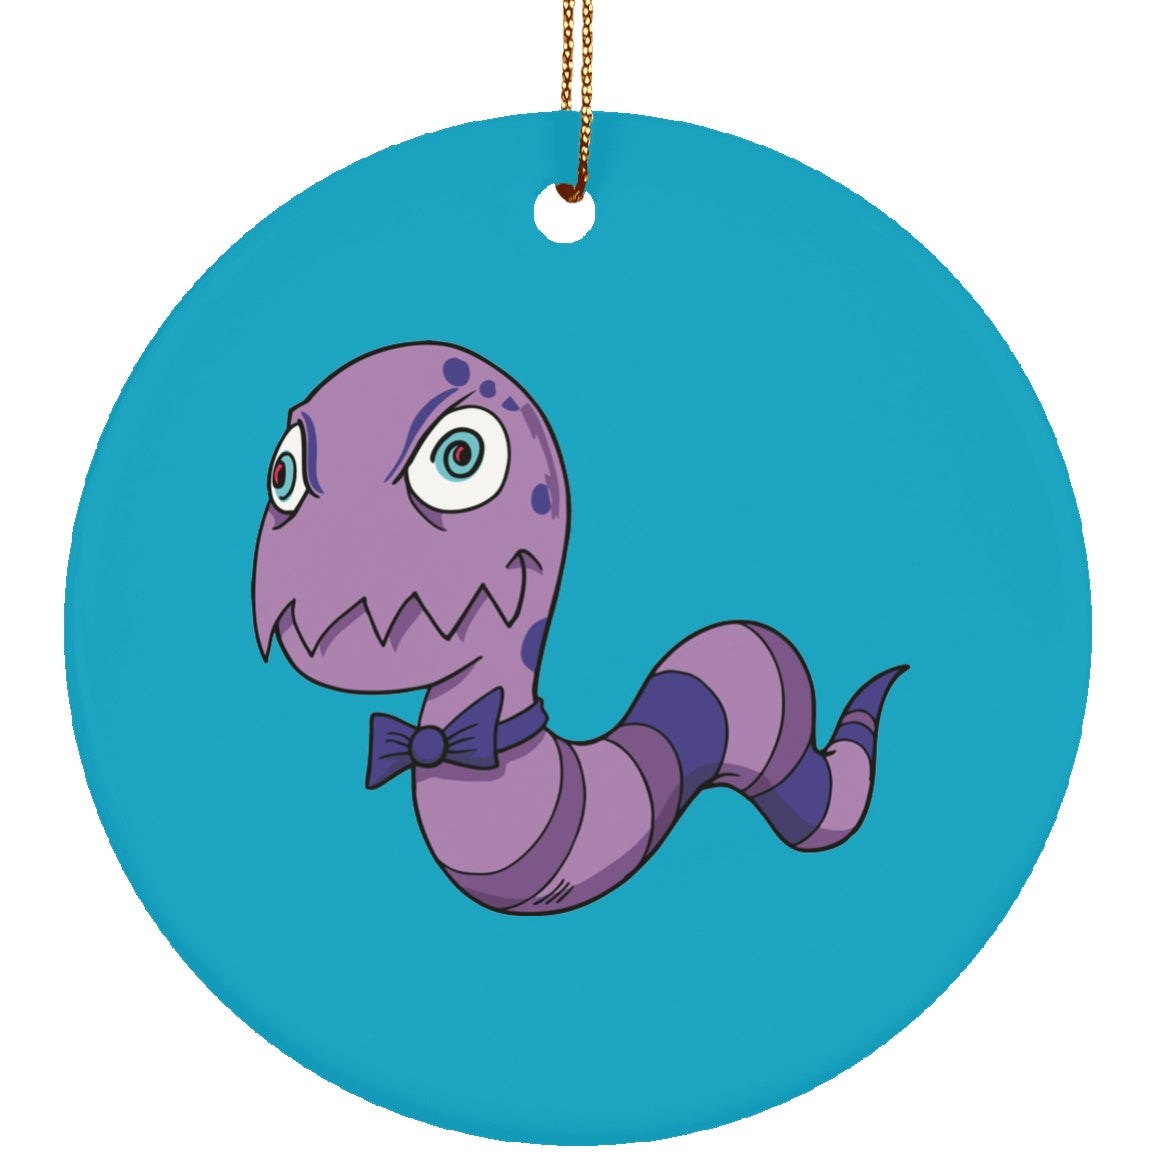 Housewares - Rheumatiod Arthritis Monster Ceramic Circle Ornament